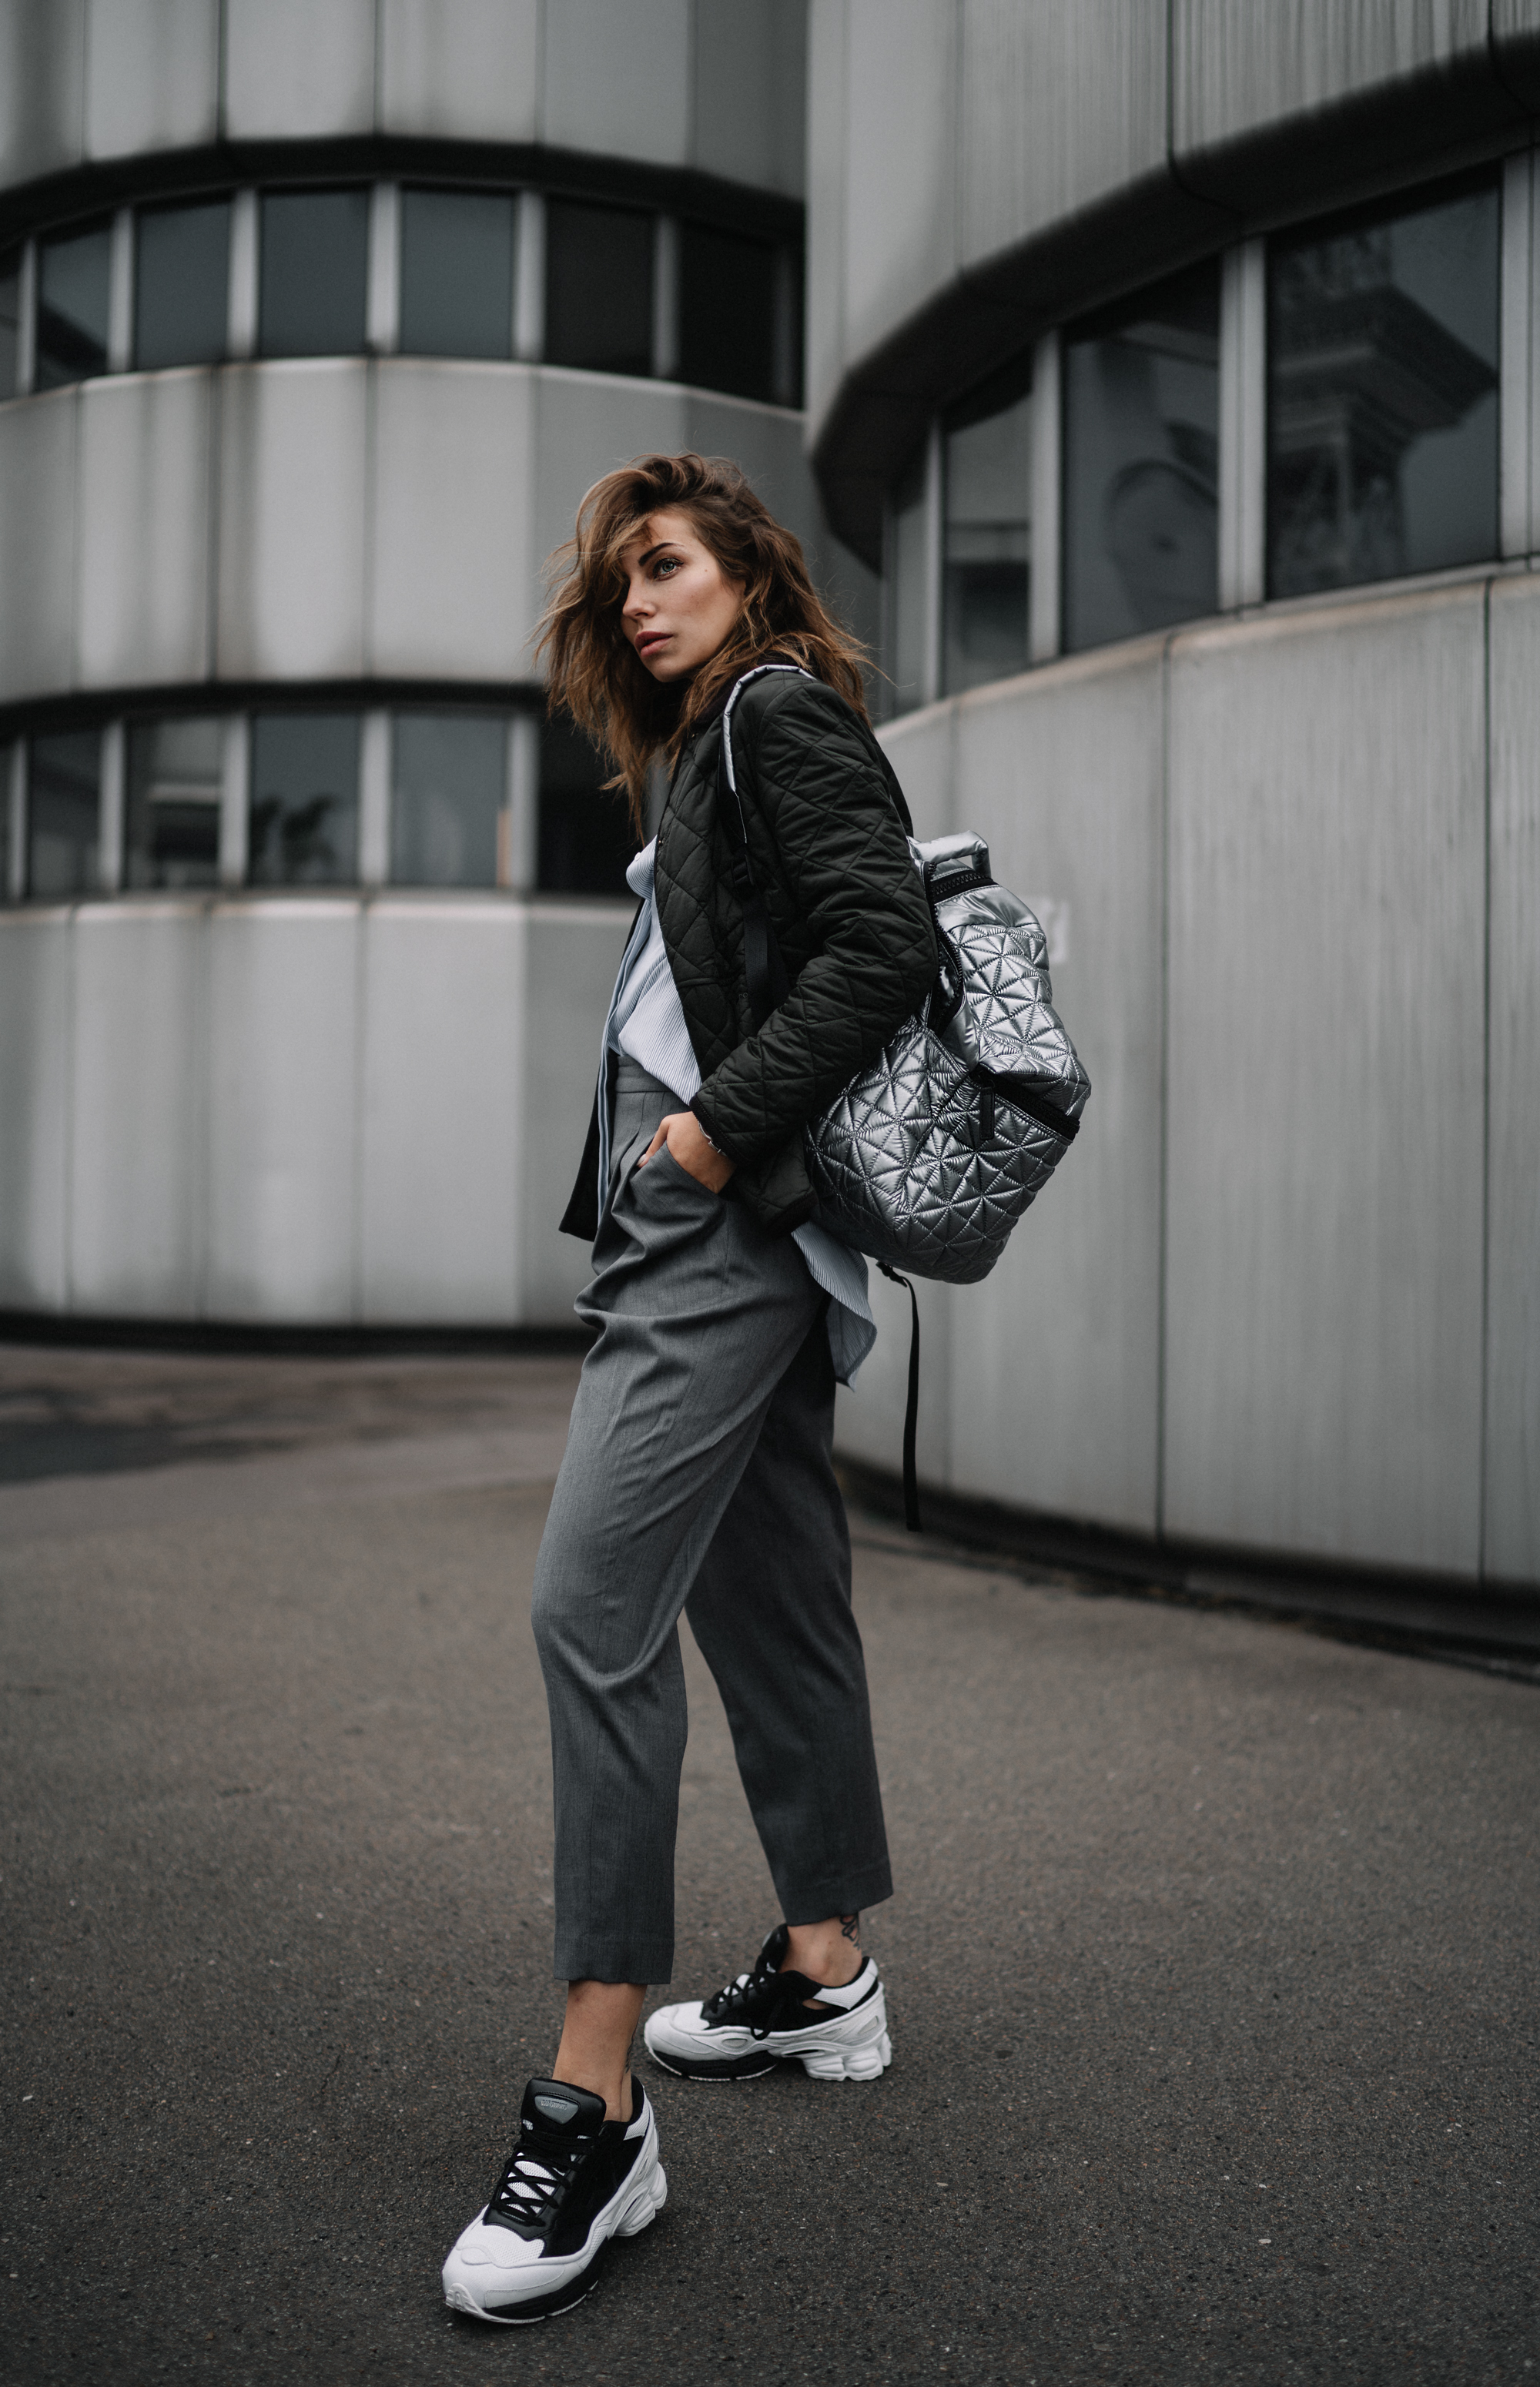 ICC Messedamm Berlin | Fashion & Style | effordless, cool, sporty, Athleisure, Tomboy | wearing: Sneakers from Adidas x Raf Simons, Vee Collective Backpack in silver, Barbour jacket | Architecture Brutalism